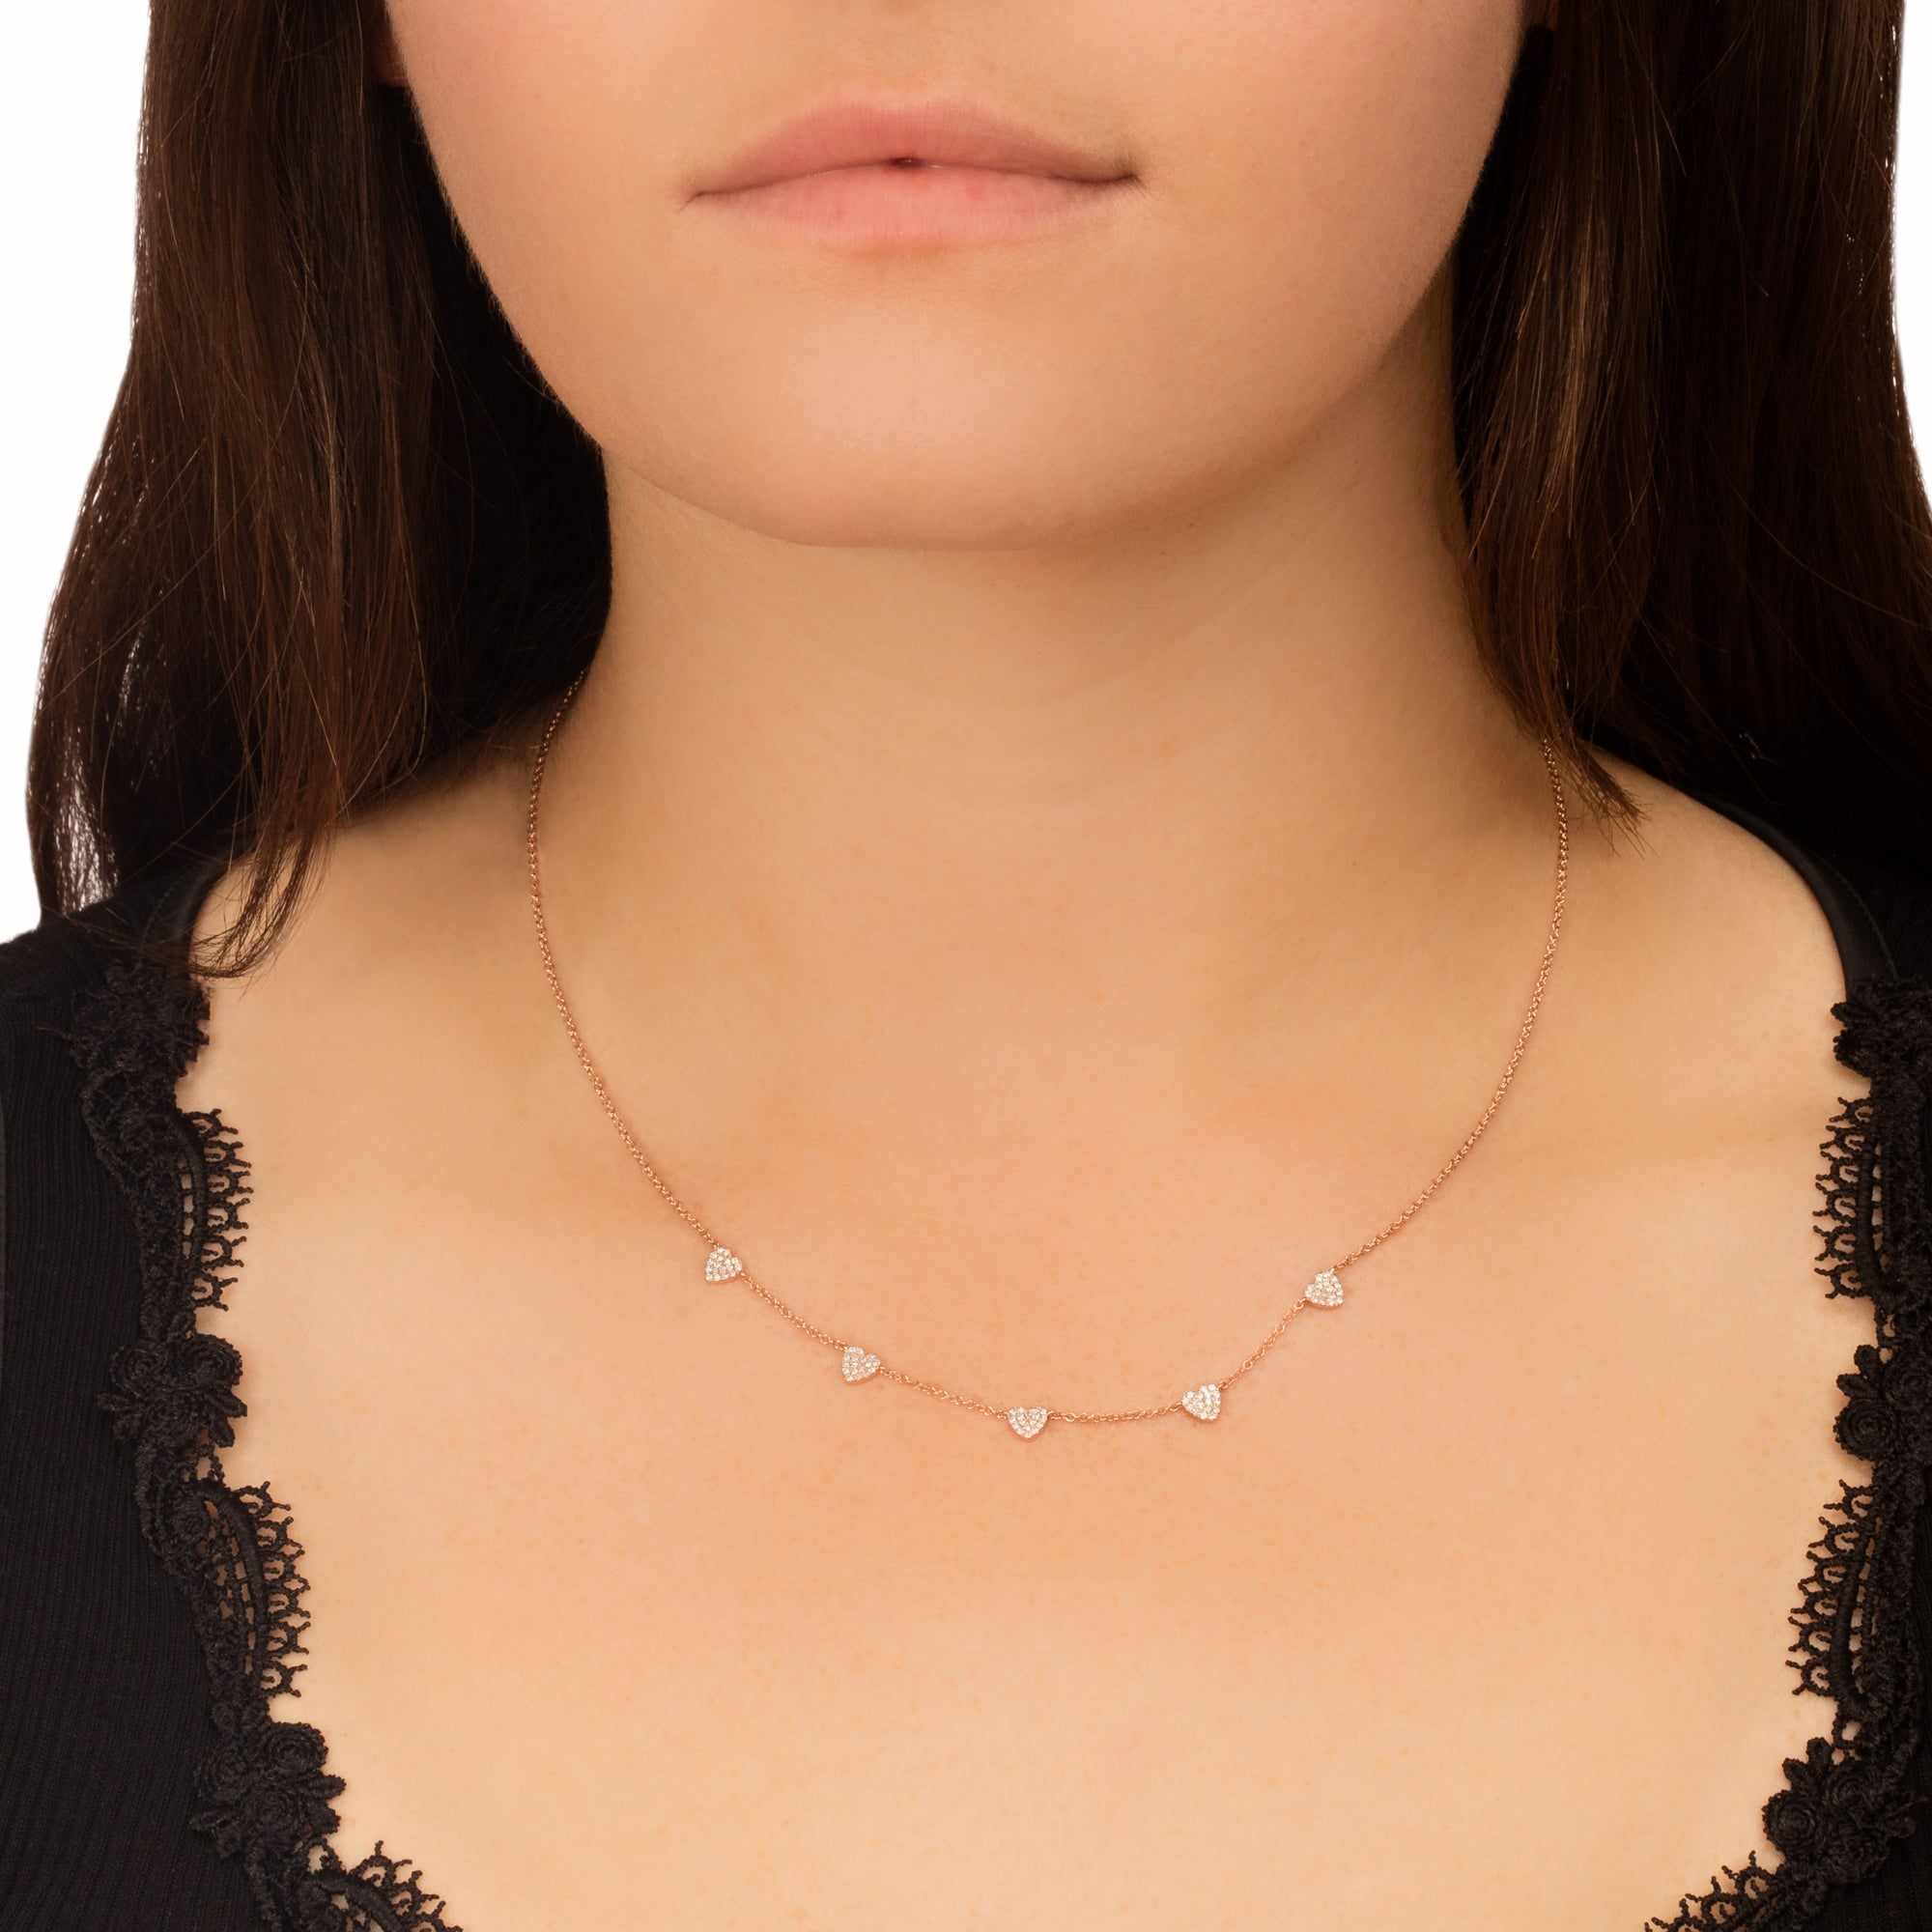 5 Mini Diamond Heart Necklace - EF Collection - necklaces | Broken English Jewelry